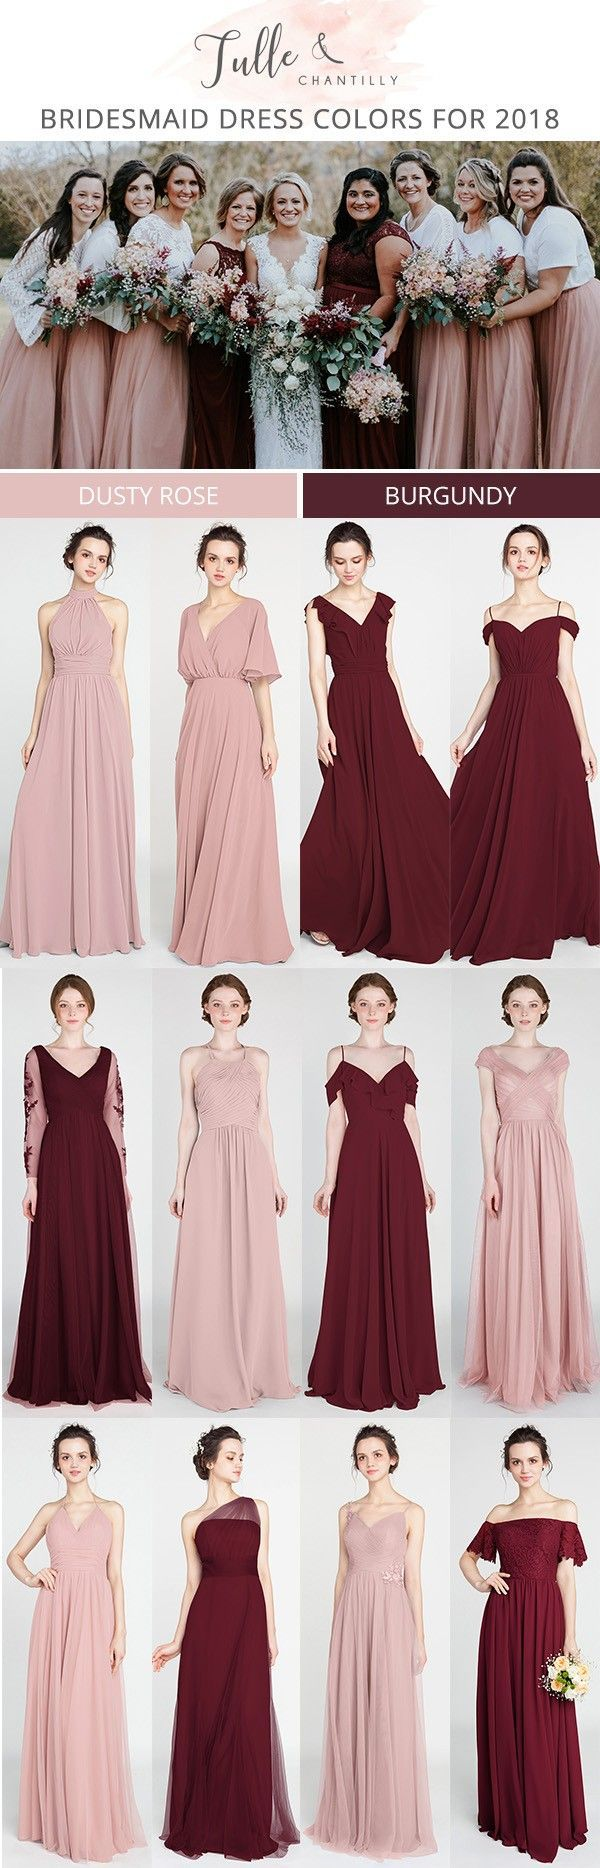 Dusty Rose And Burgundy Bridesmaid Dresses For 2018 Trends Wedding Weddinginspirat Burgundy Bridesmaid Dresses Vintage Bridesmaid Dresses Burgundy Bridesmaid